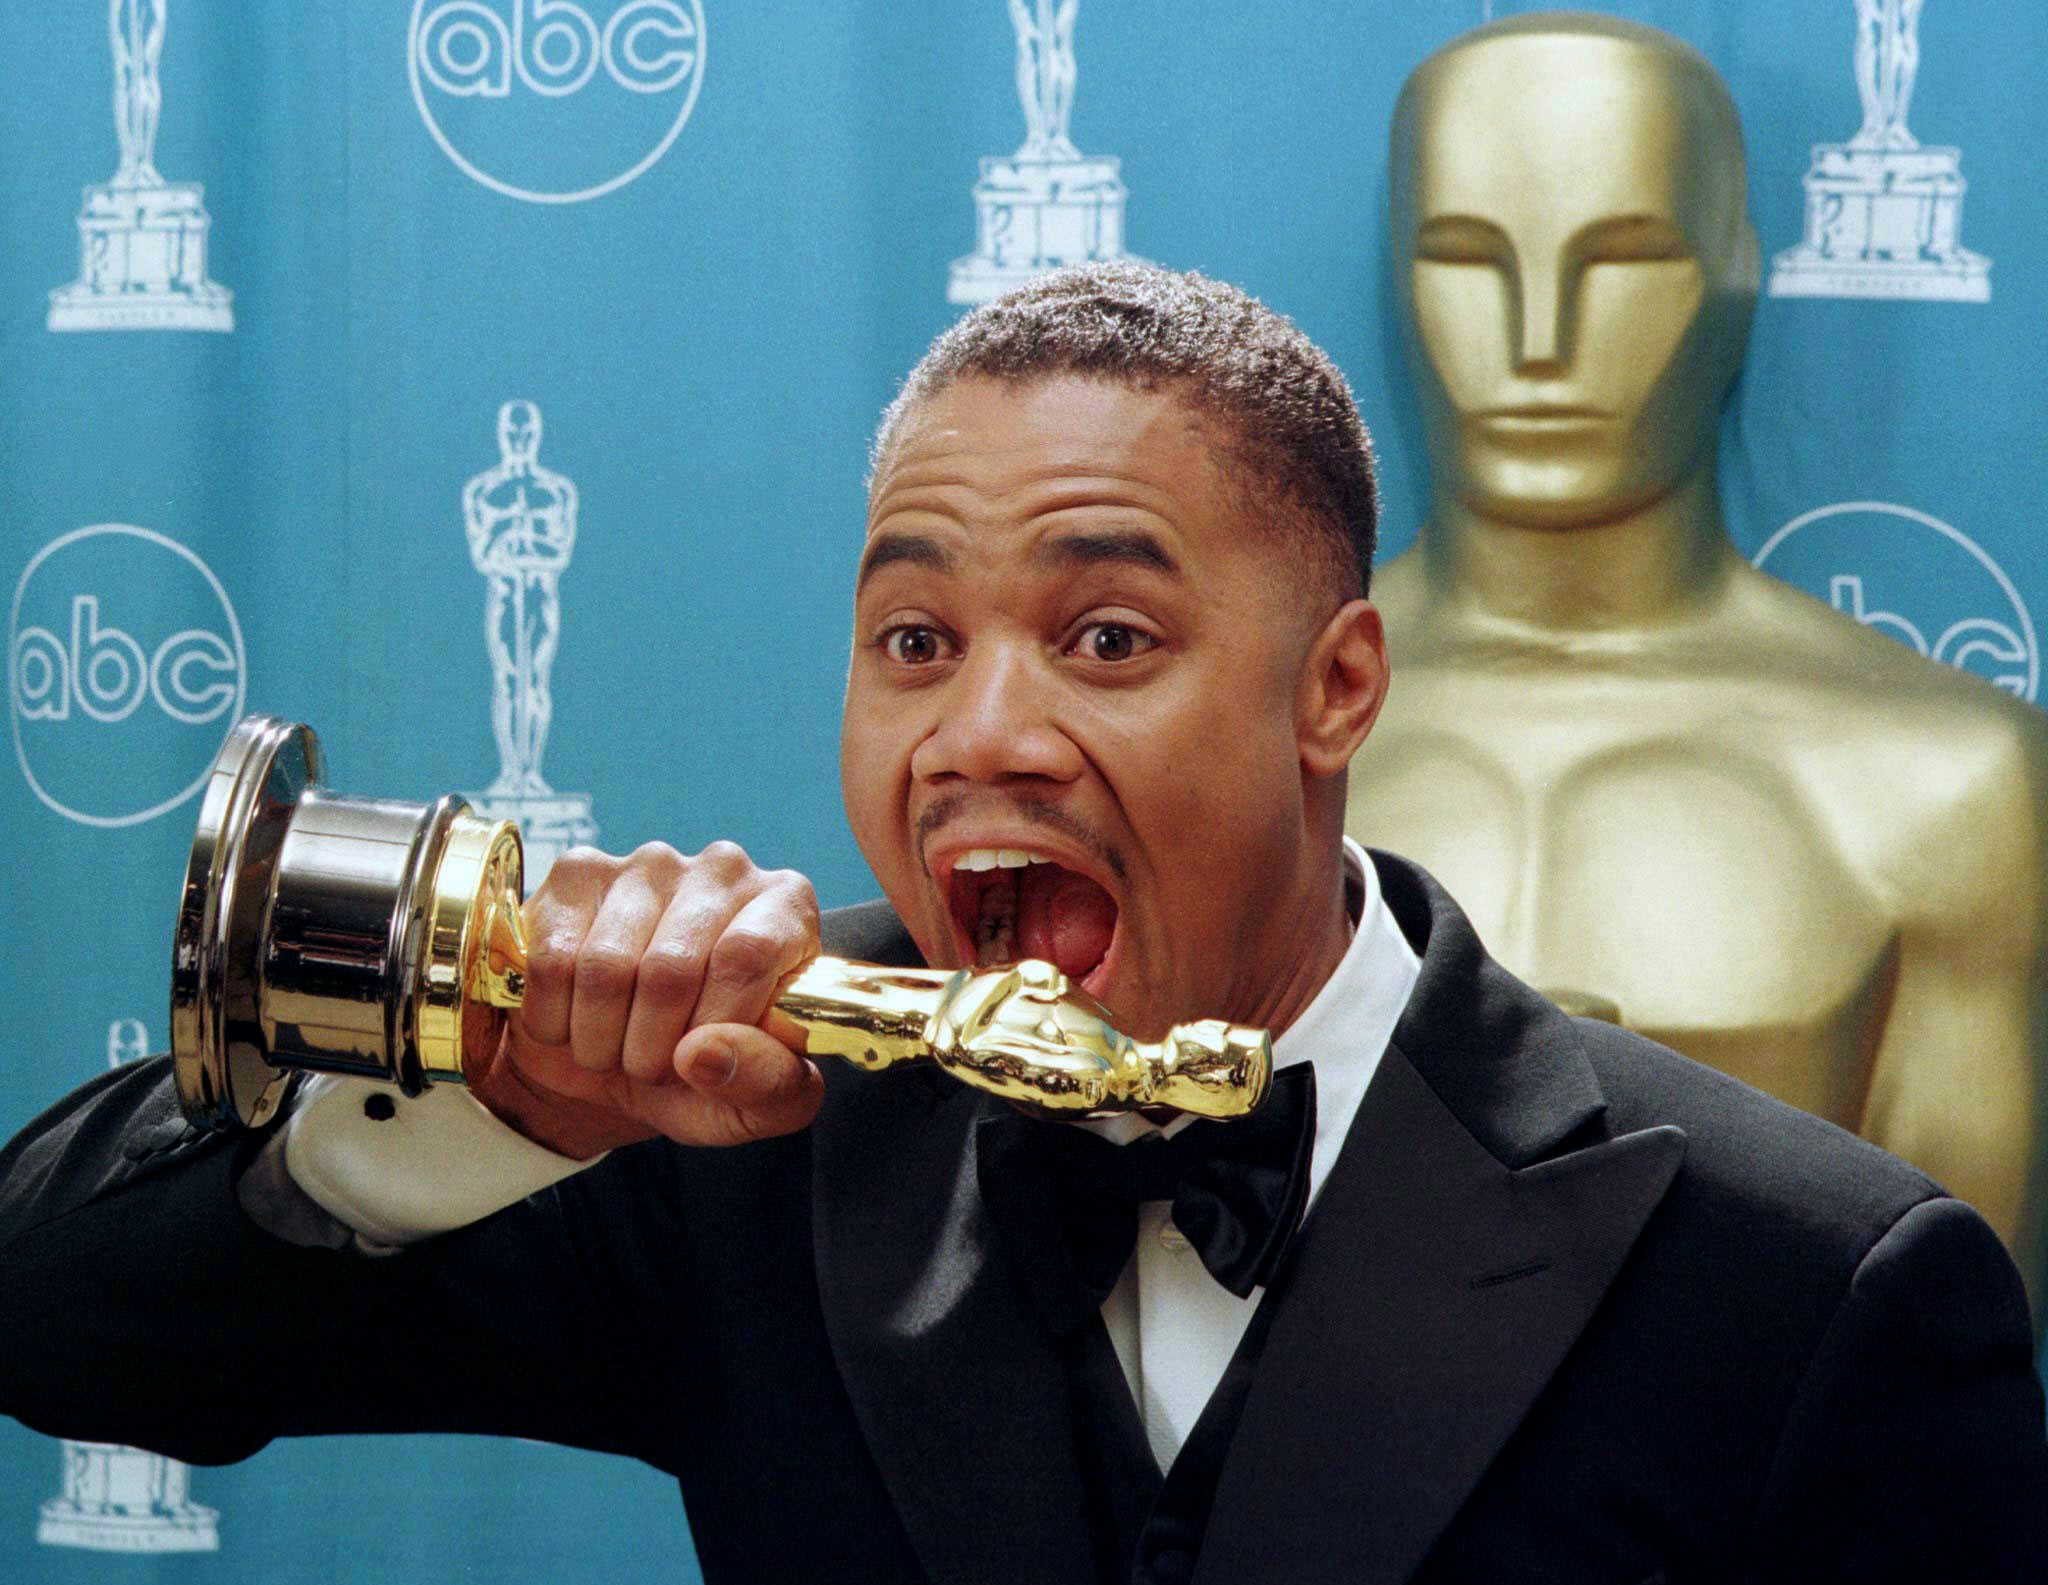 Best Supporting Actor Cuba Gooding Jr. pretends to bite into his Oscar statue after he won the award..